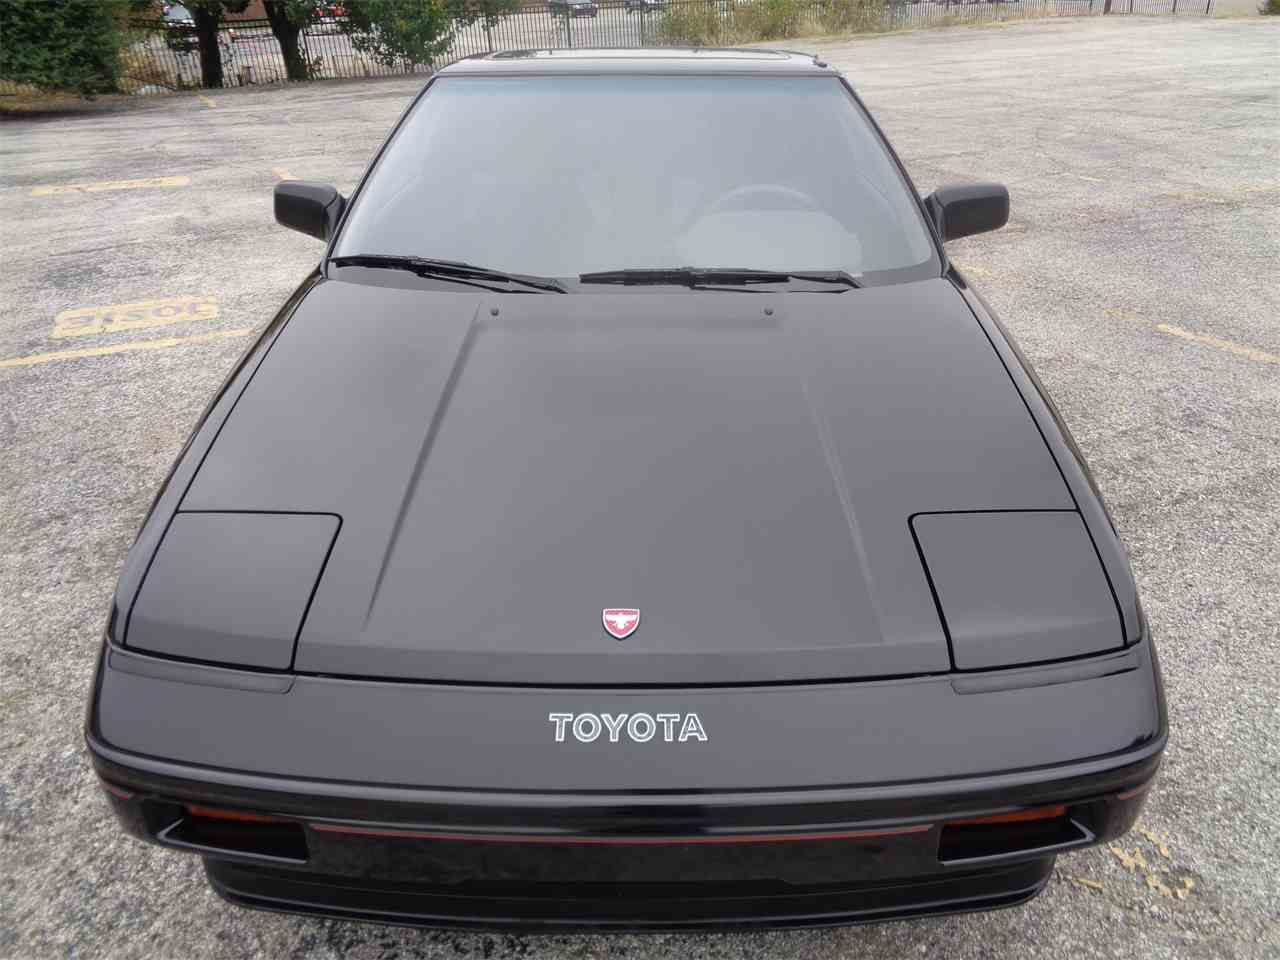 1986 Toyota Mr2 For Sale Listing Id Cc 1042750 Classiccars Com Driveyourdream Toyotamr2 Toyota Mr2 Classic Cars Mr2 For Sale